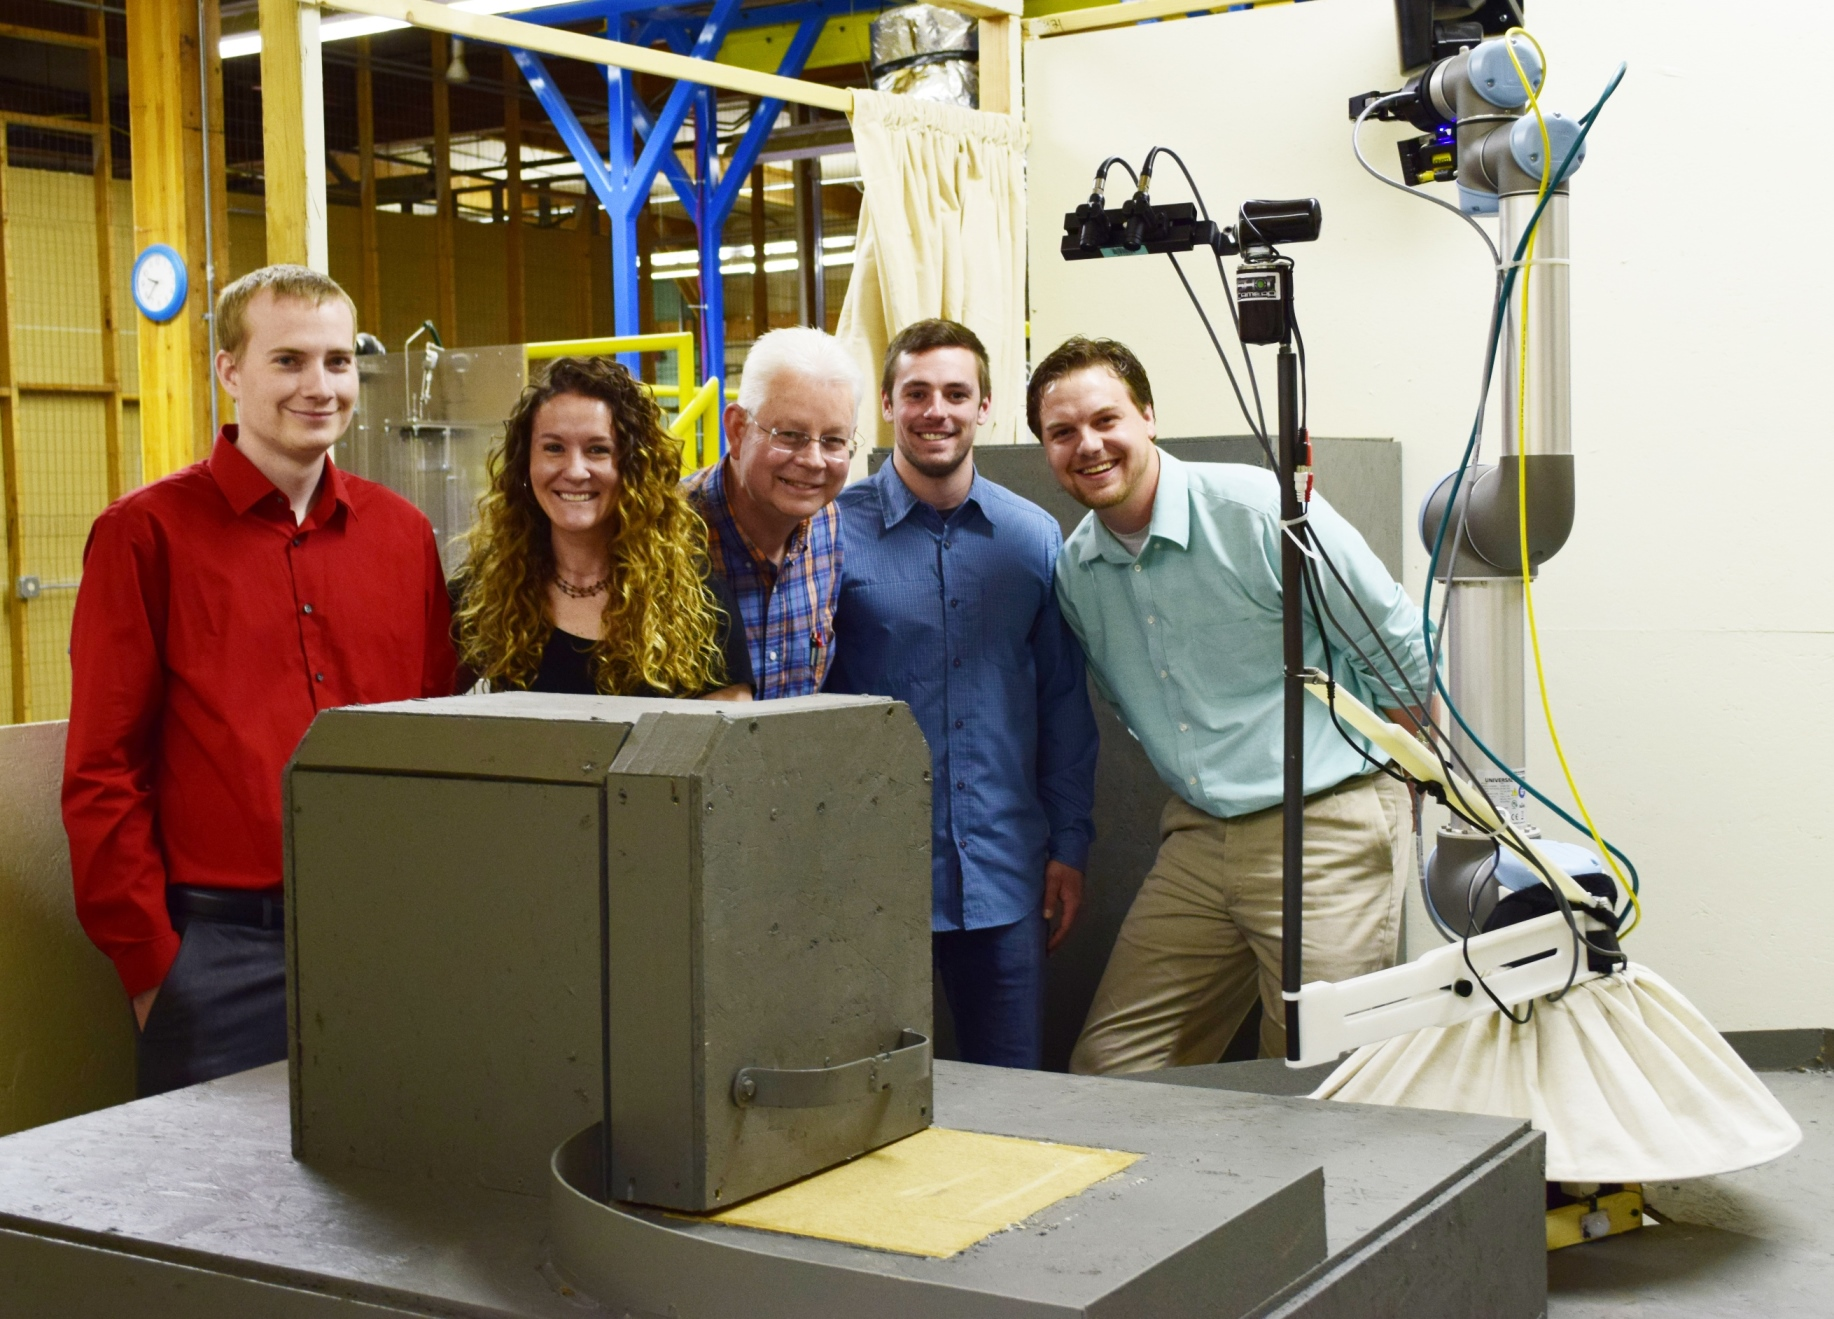 The intern team with their robot (to the right) inside of the mock-up cell. Left to right: Jerron Bennett, Larinda Nichols, mentor Kevin Croft, Sage Thibodeau and Cody Race.